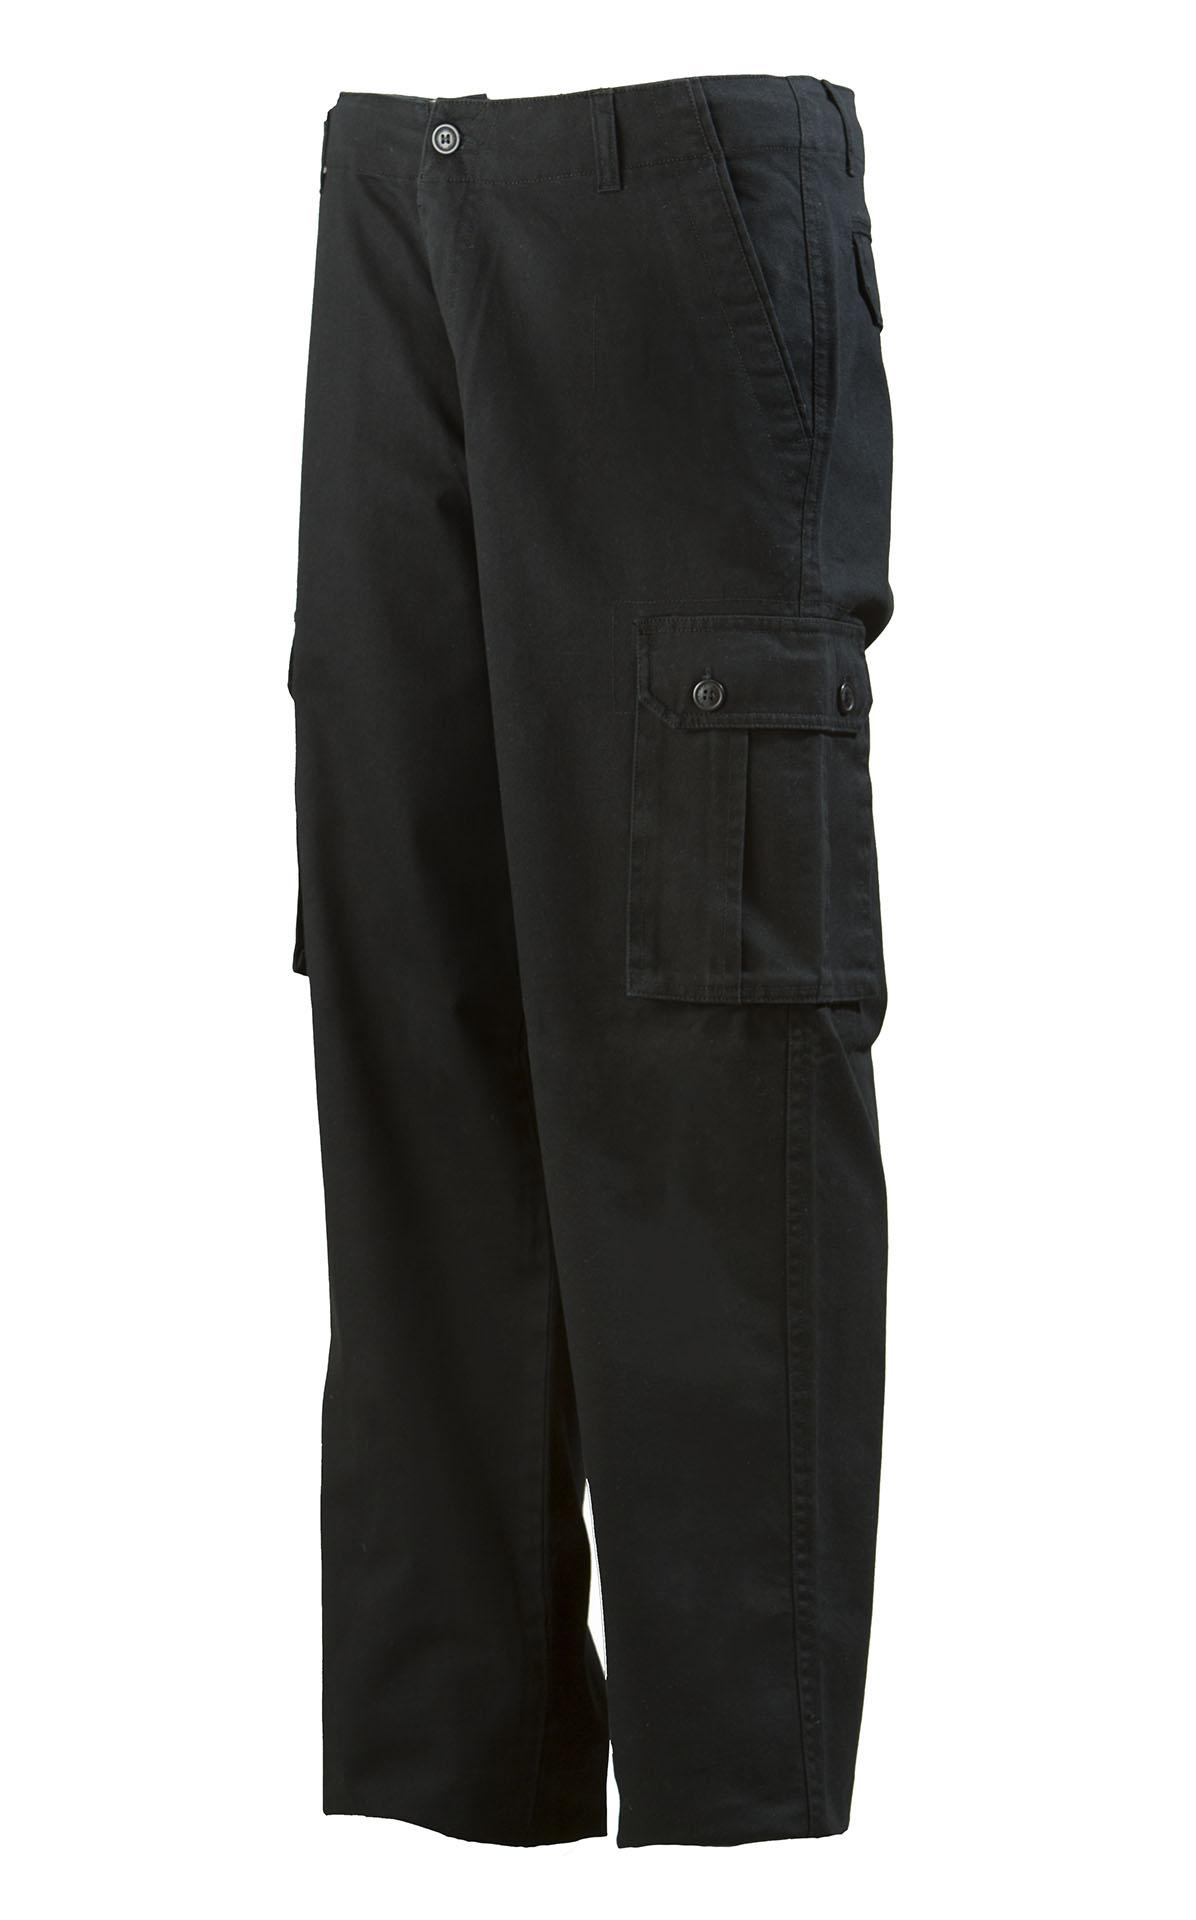 Toxotis Trouser Black 2019B